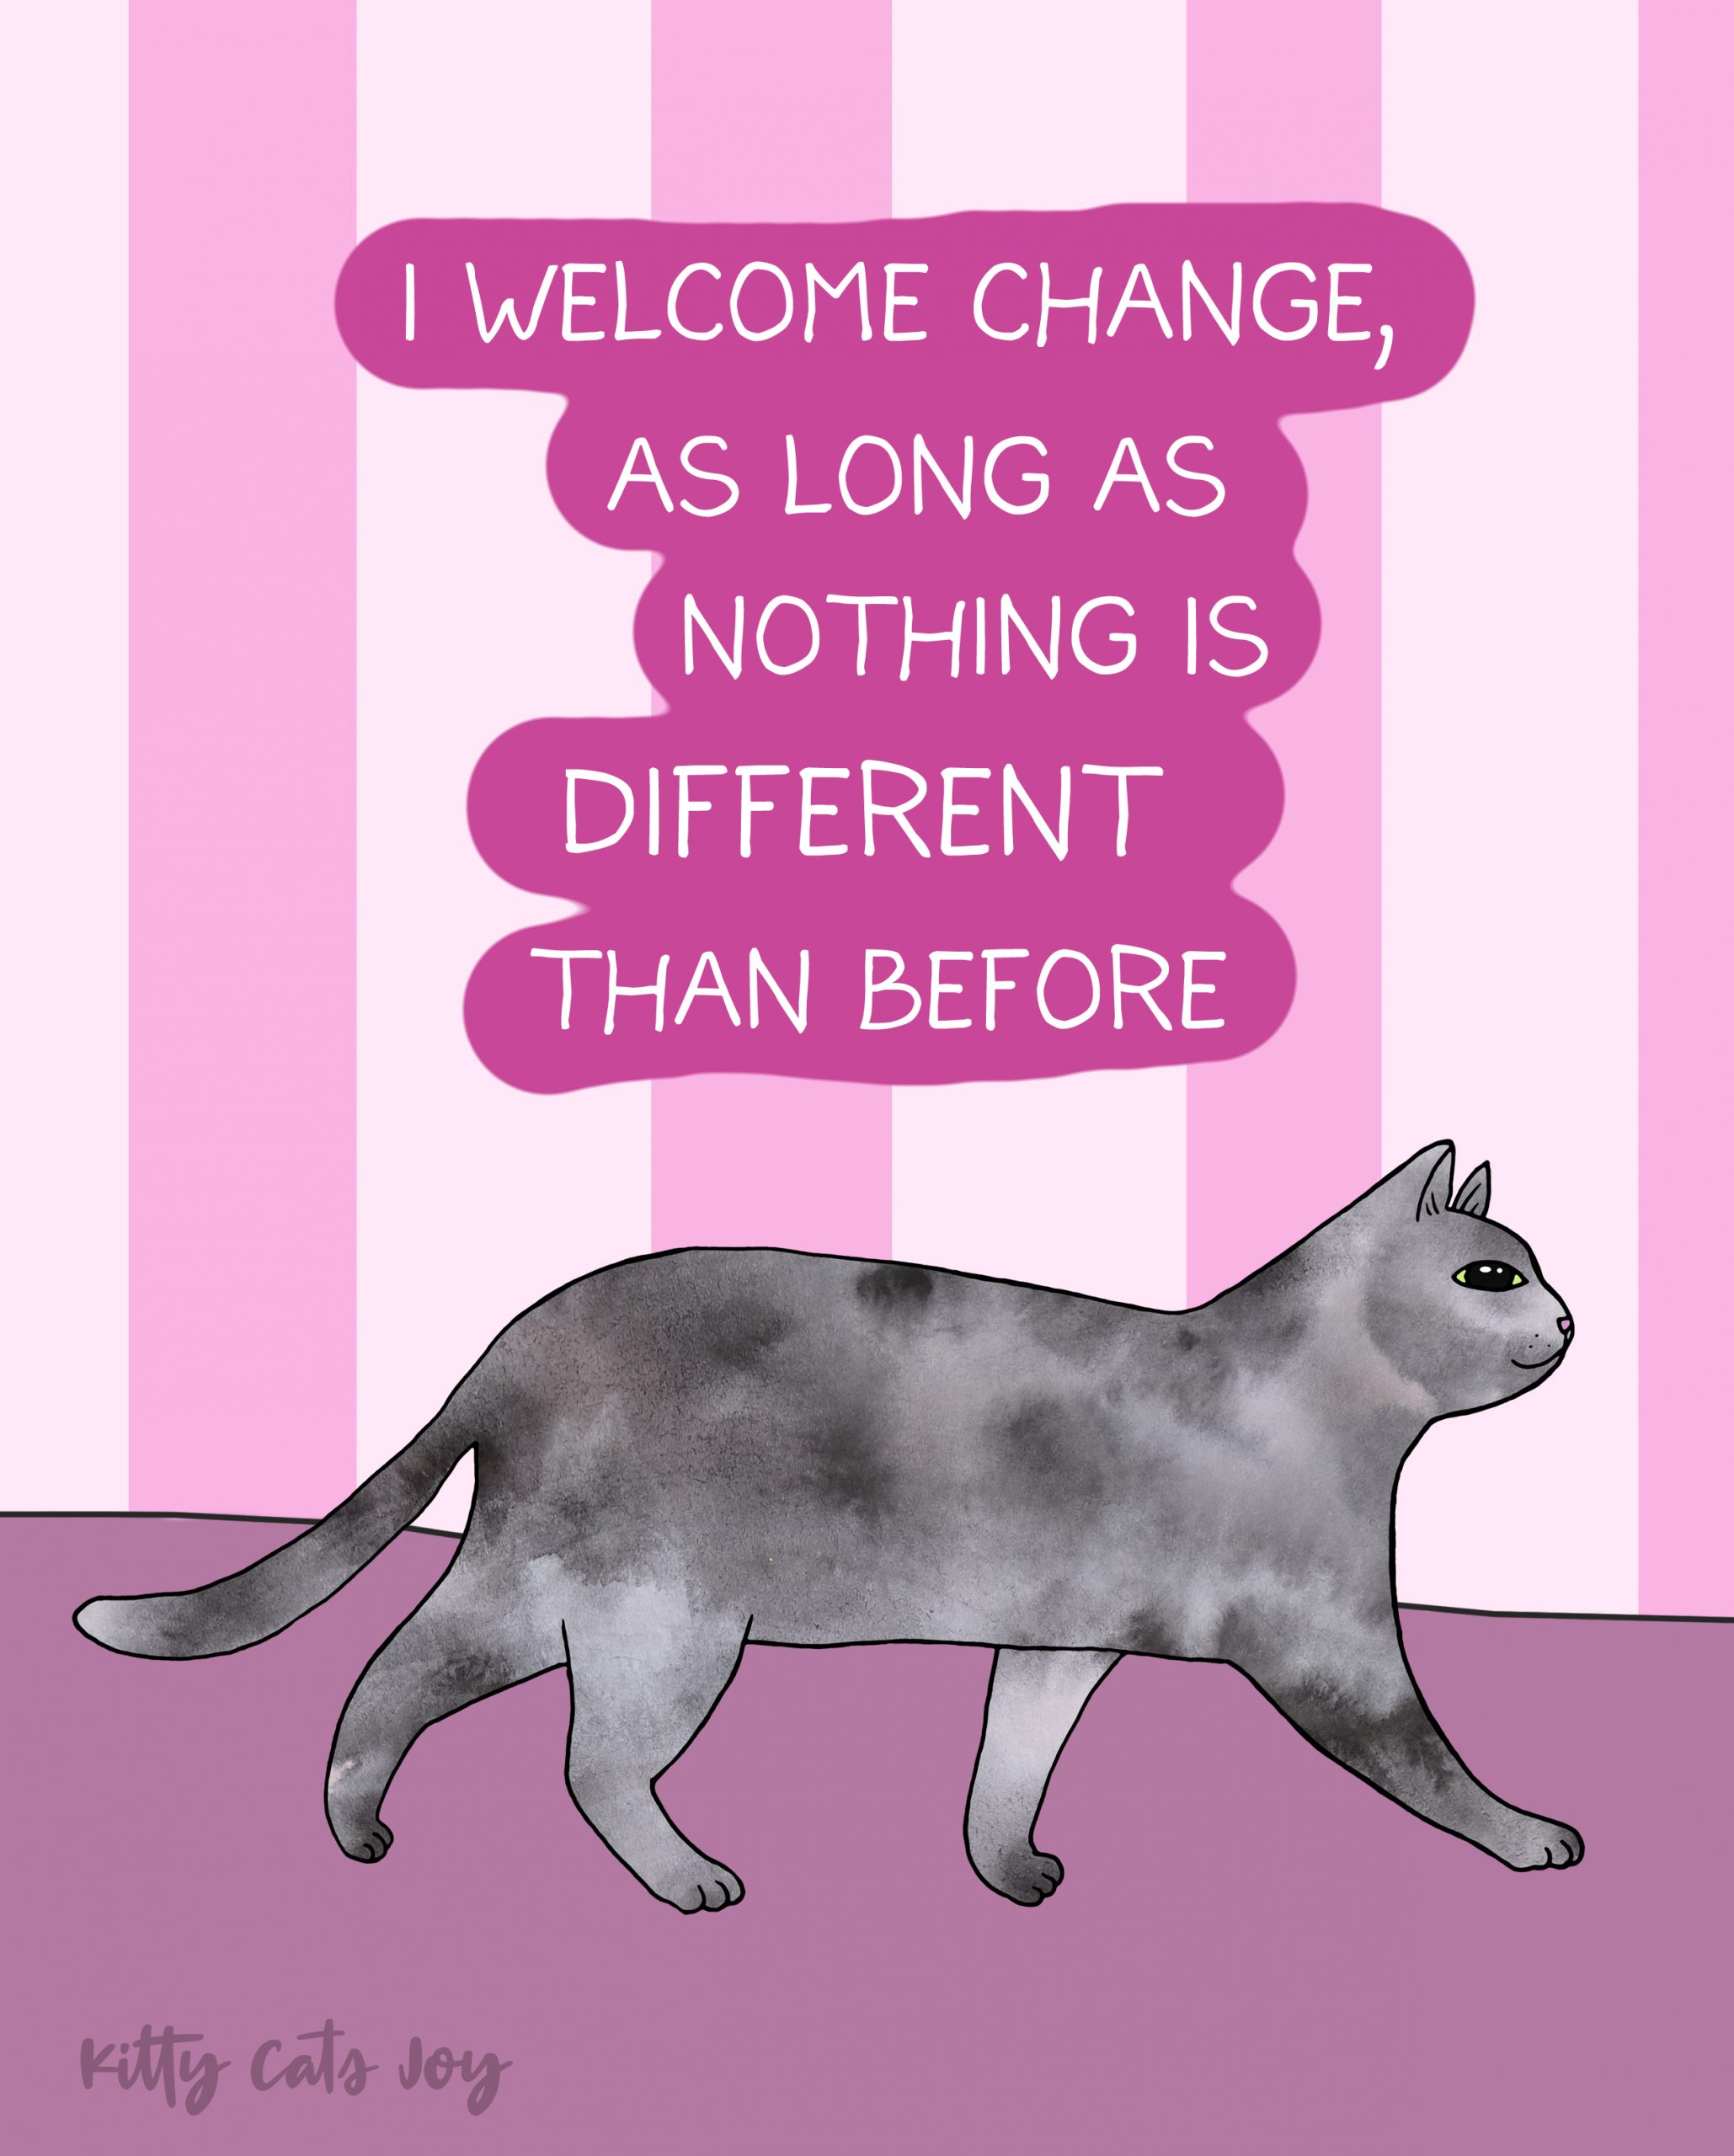 Welcoming Change - Funny Unproductive Cat Quotes